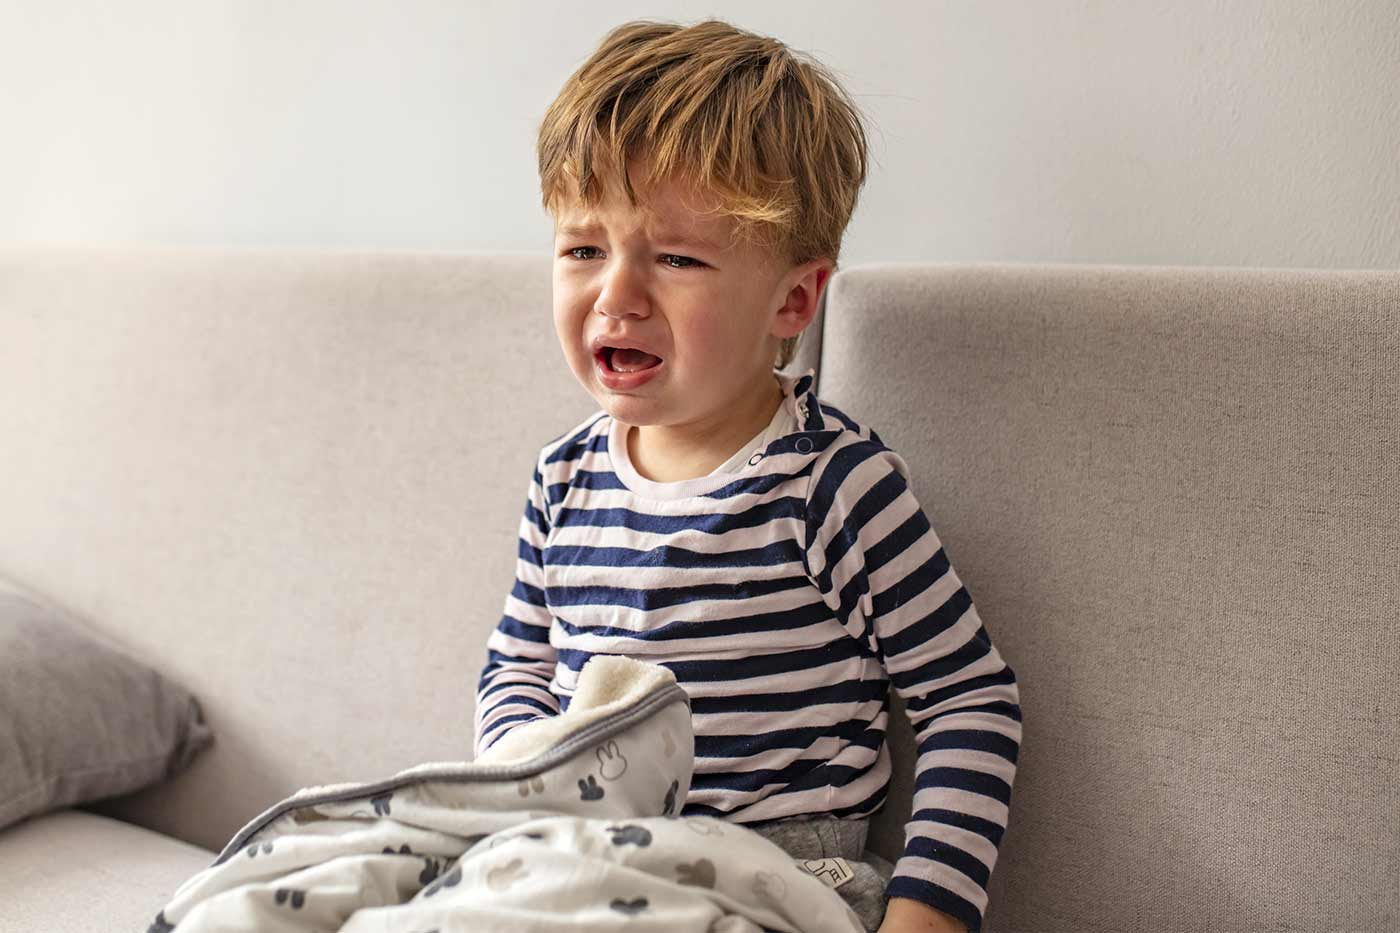 toddler wakes up crying from naps